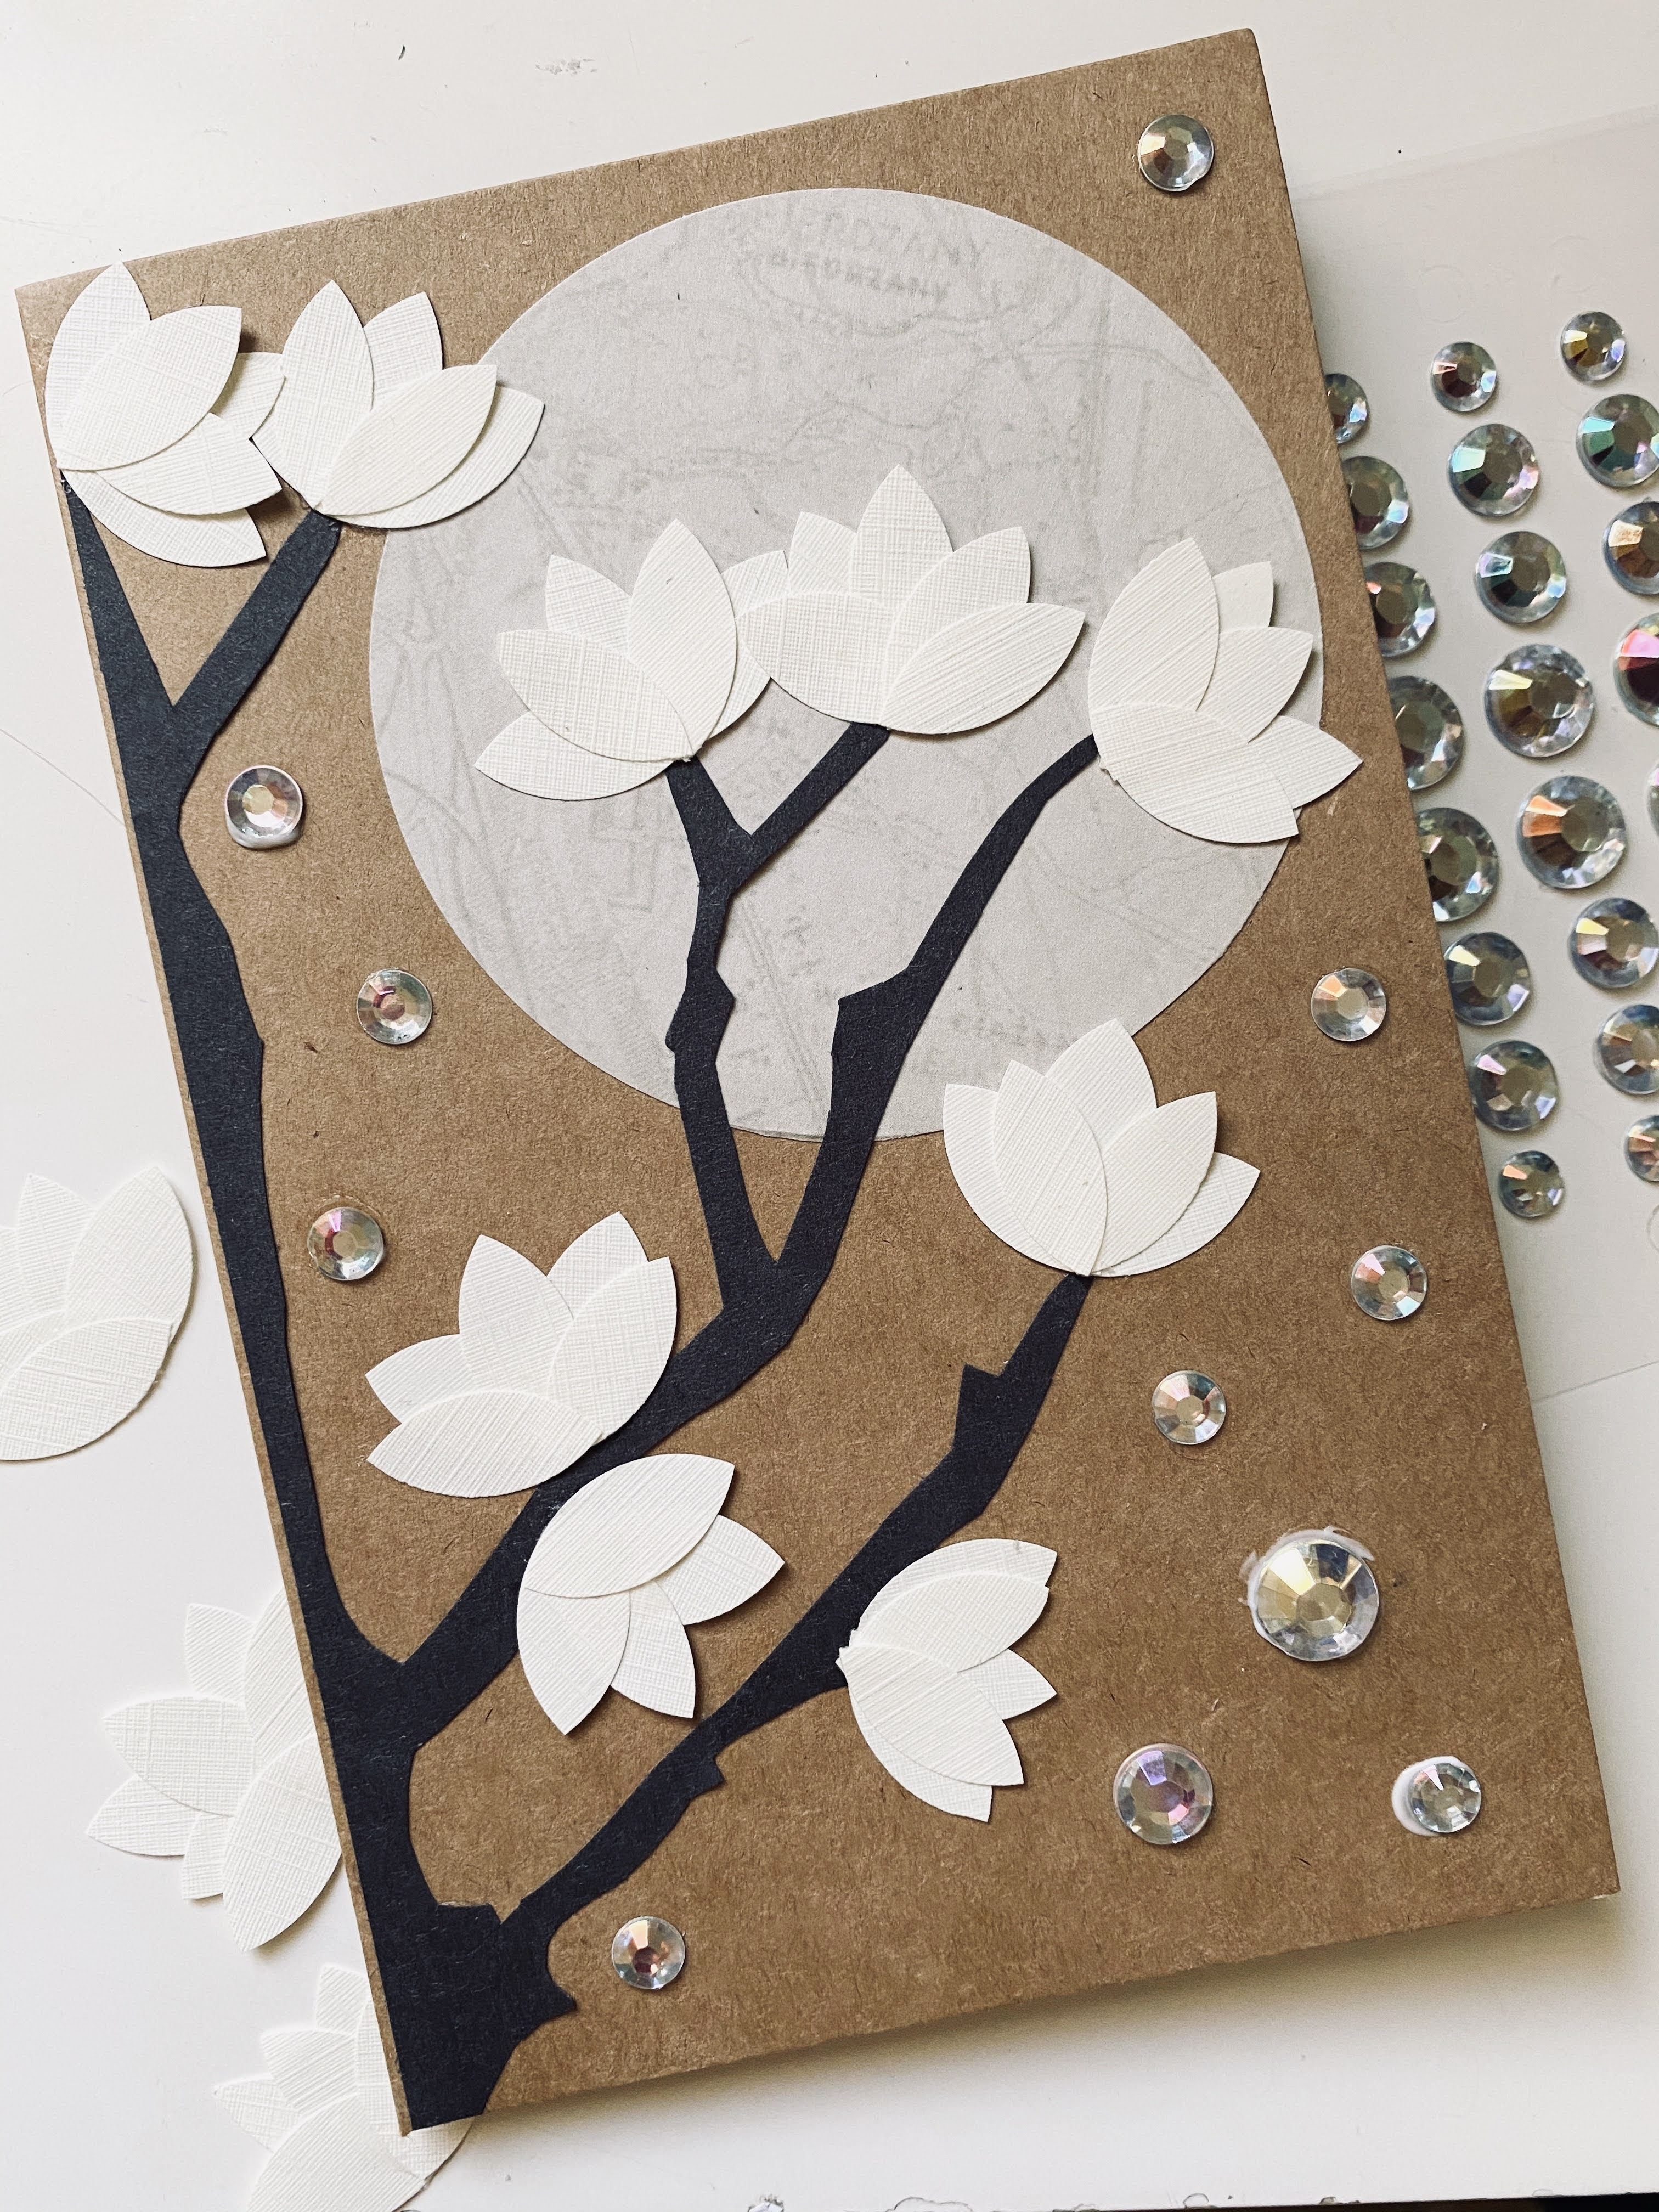 Textured cream colored Magnolias on black branches with a full moon and rhinestone stars.